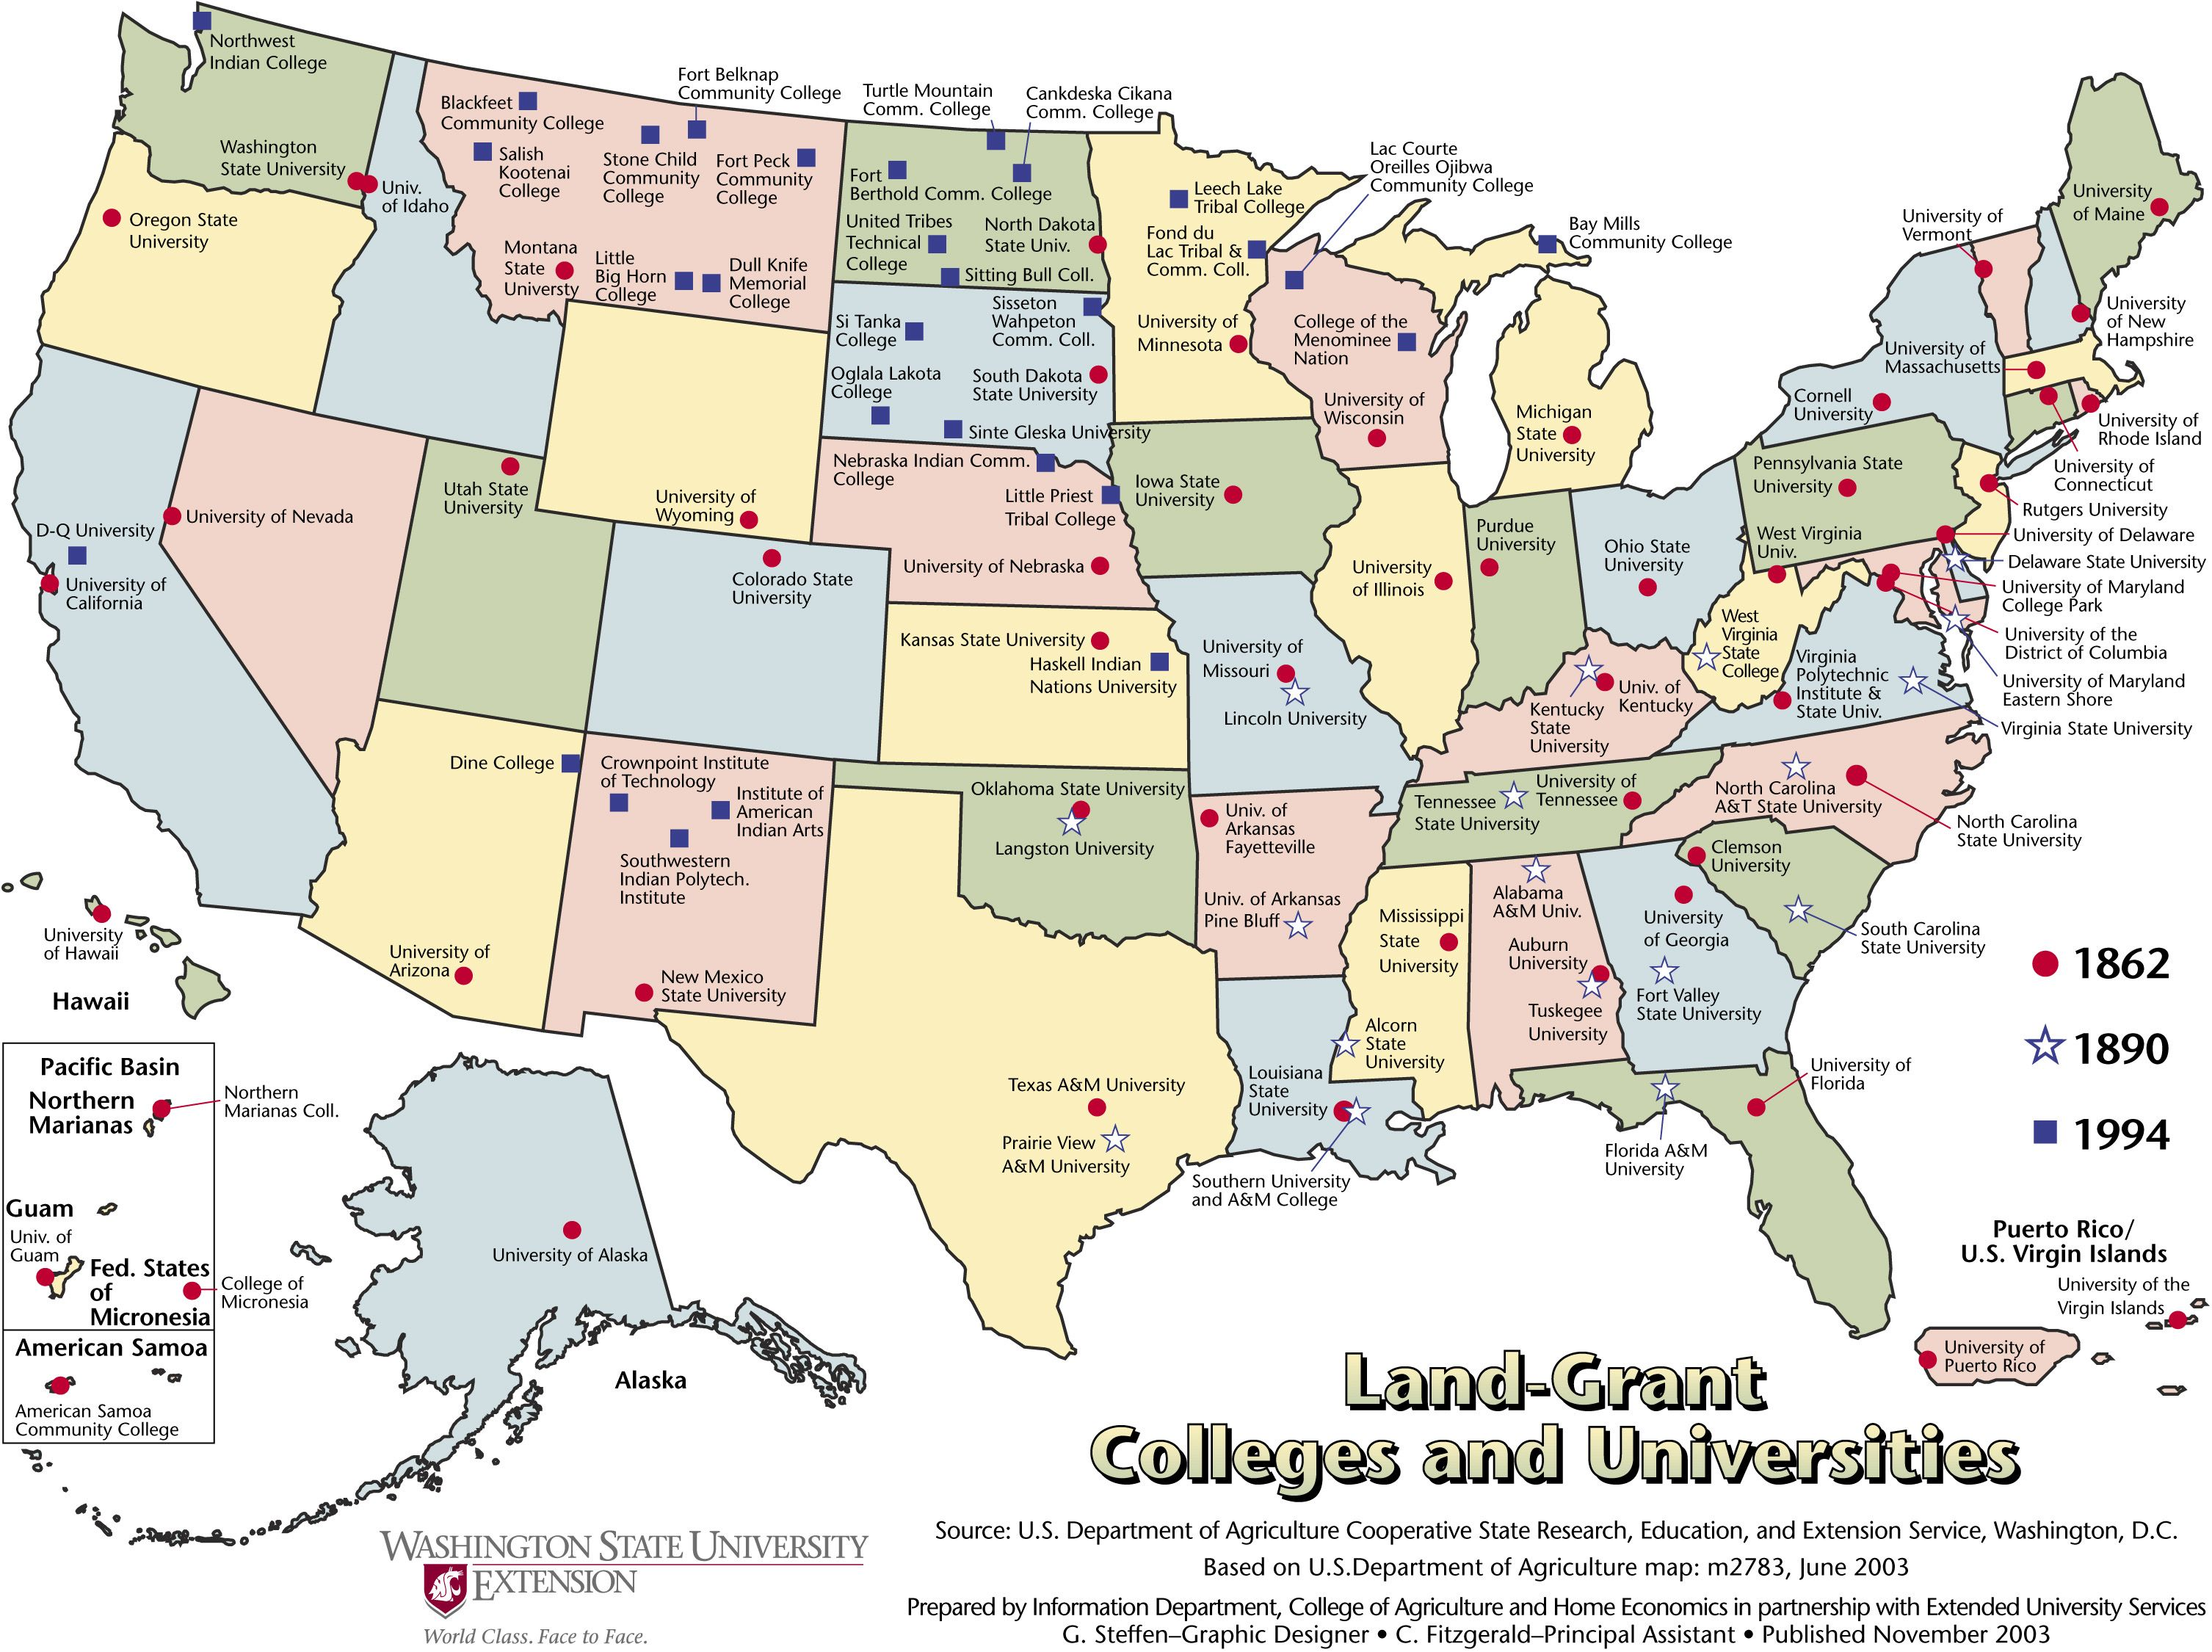 Land Grant Colleges and Universities in the United States | Maps and ...